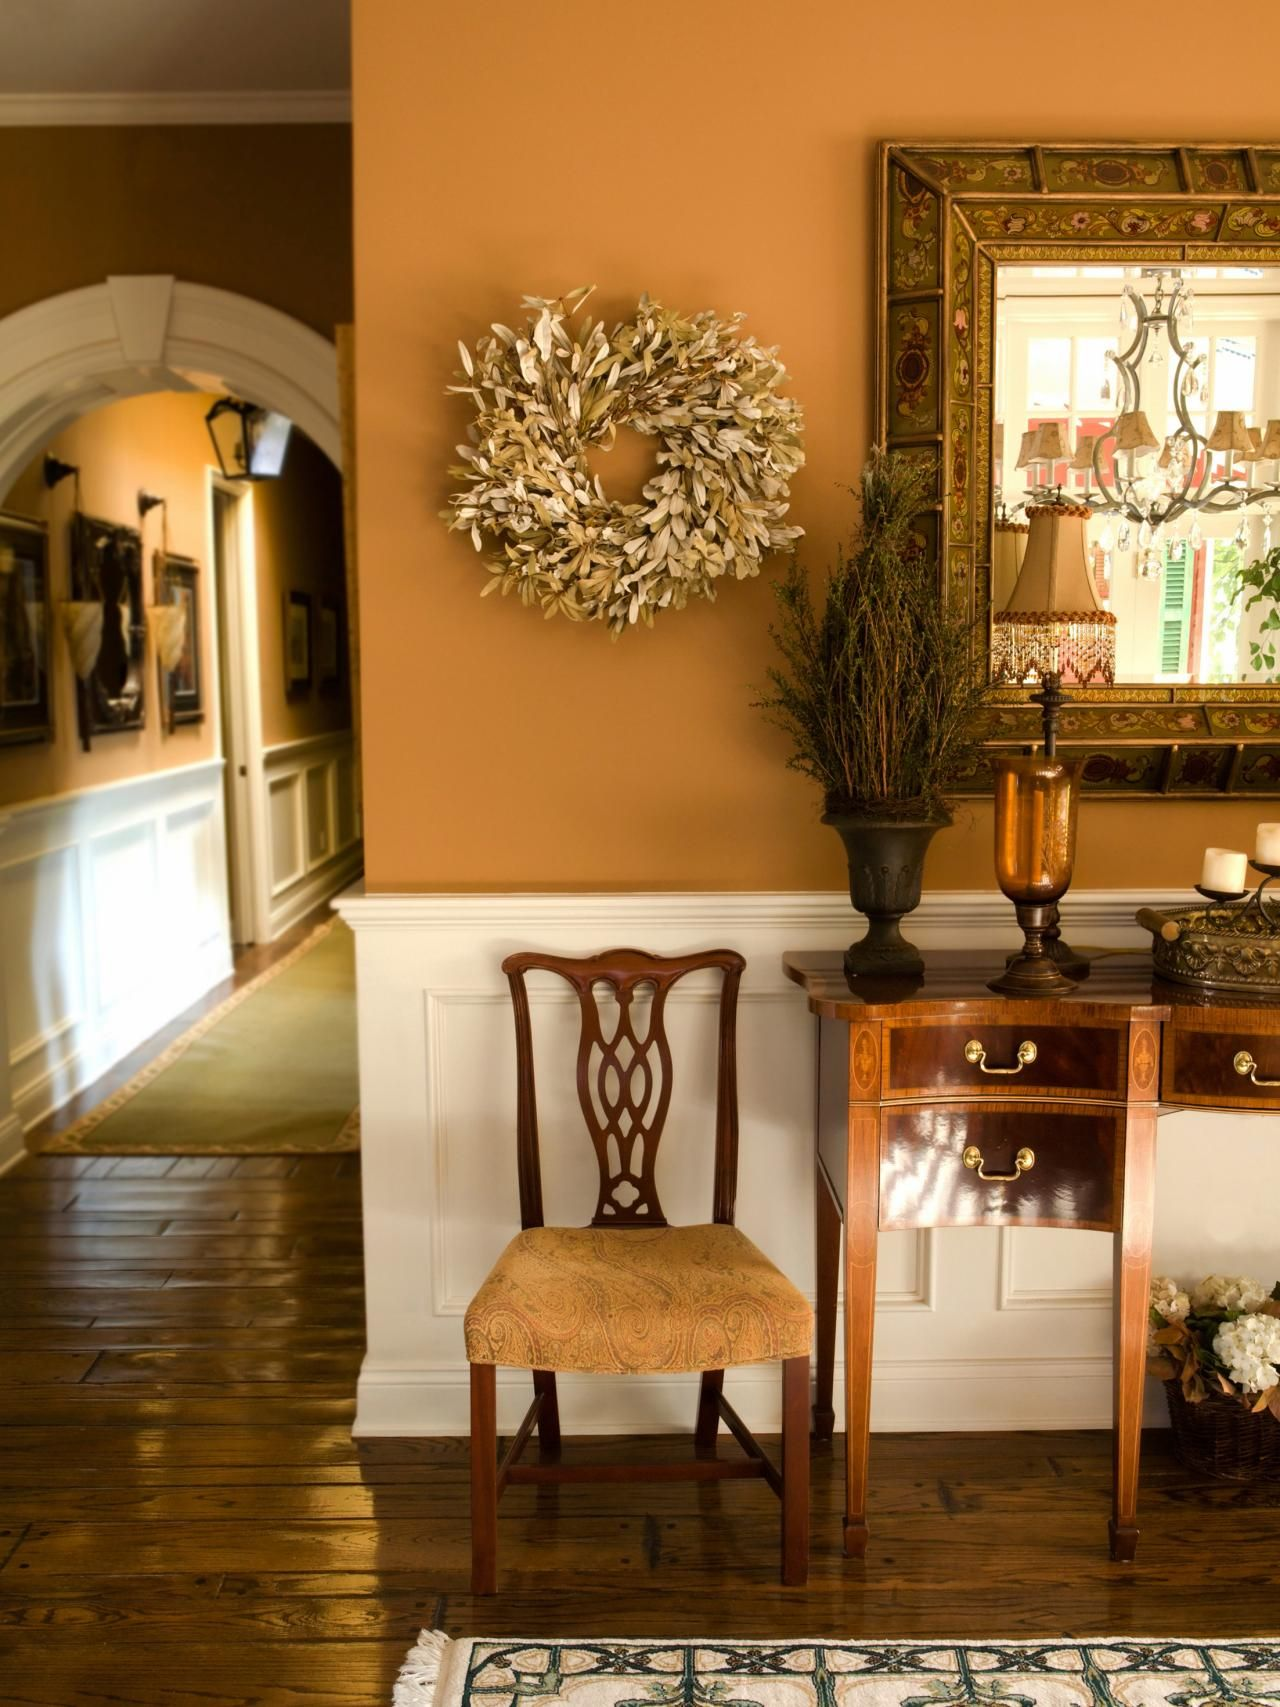 Fall Decorating Ideas: Simple Ways to Cozy Up | Interior Design Styles and  Color Schemes